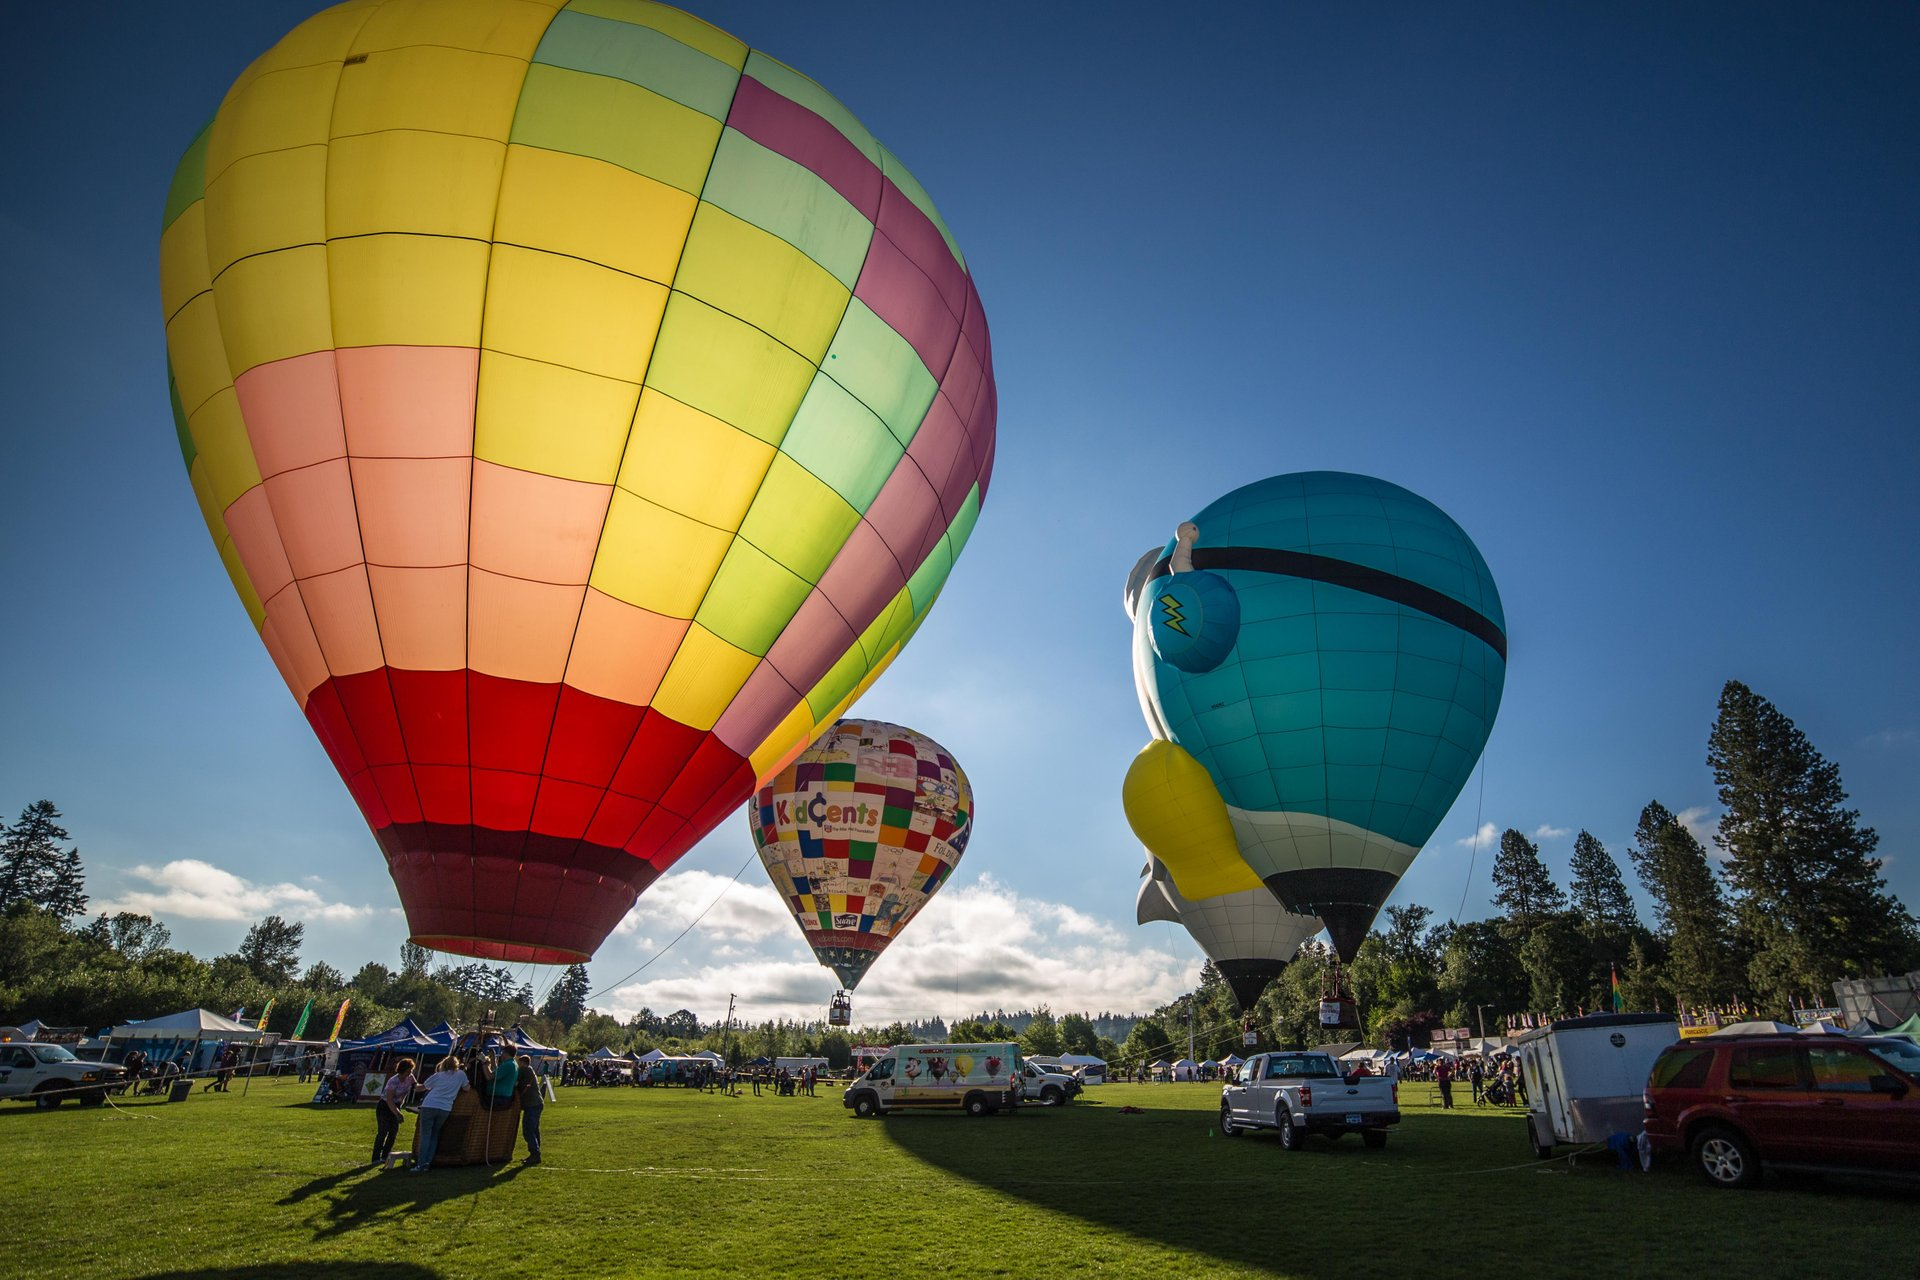 Tigard Festival of Balloons in Oregon 2020 - Best Time